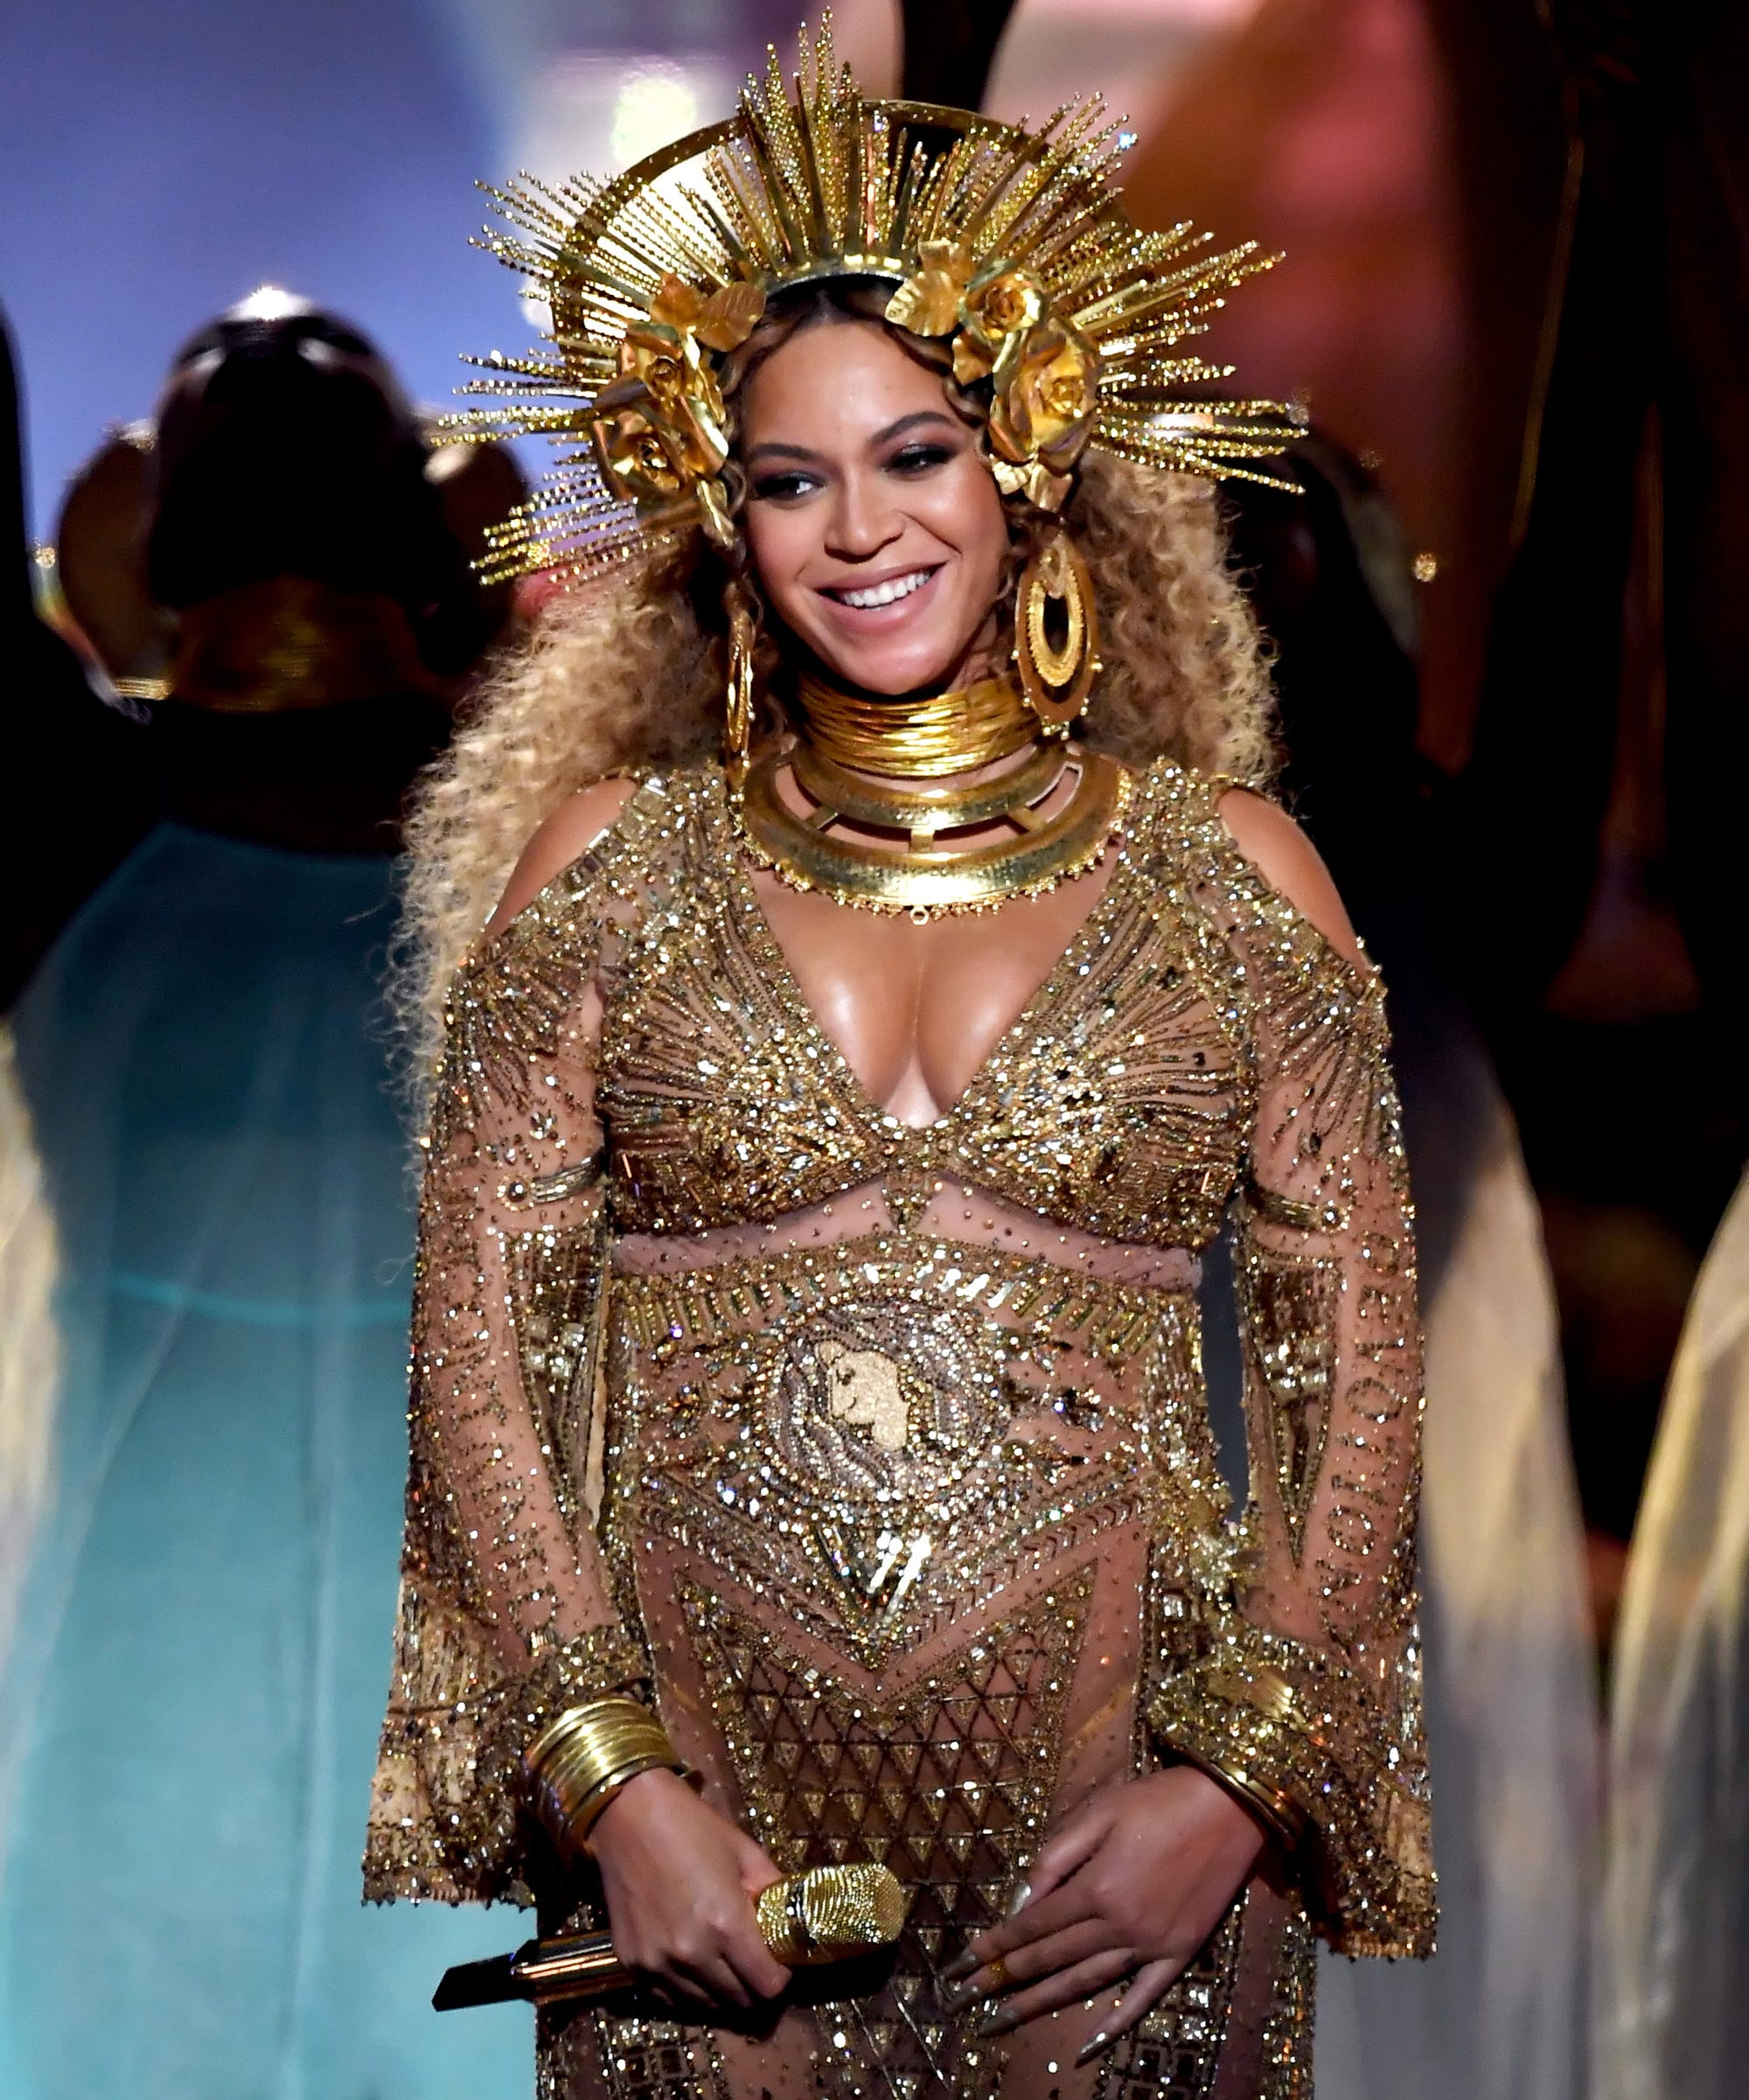 beyonce grammys feminist message strong women mothers